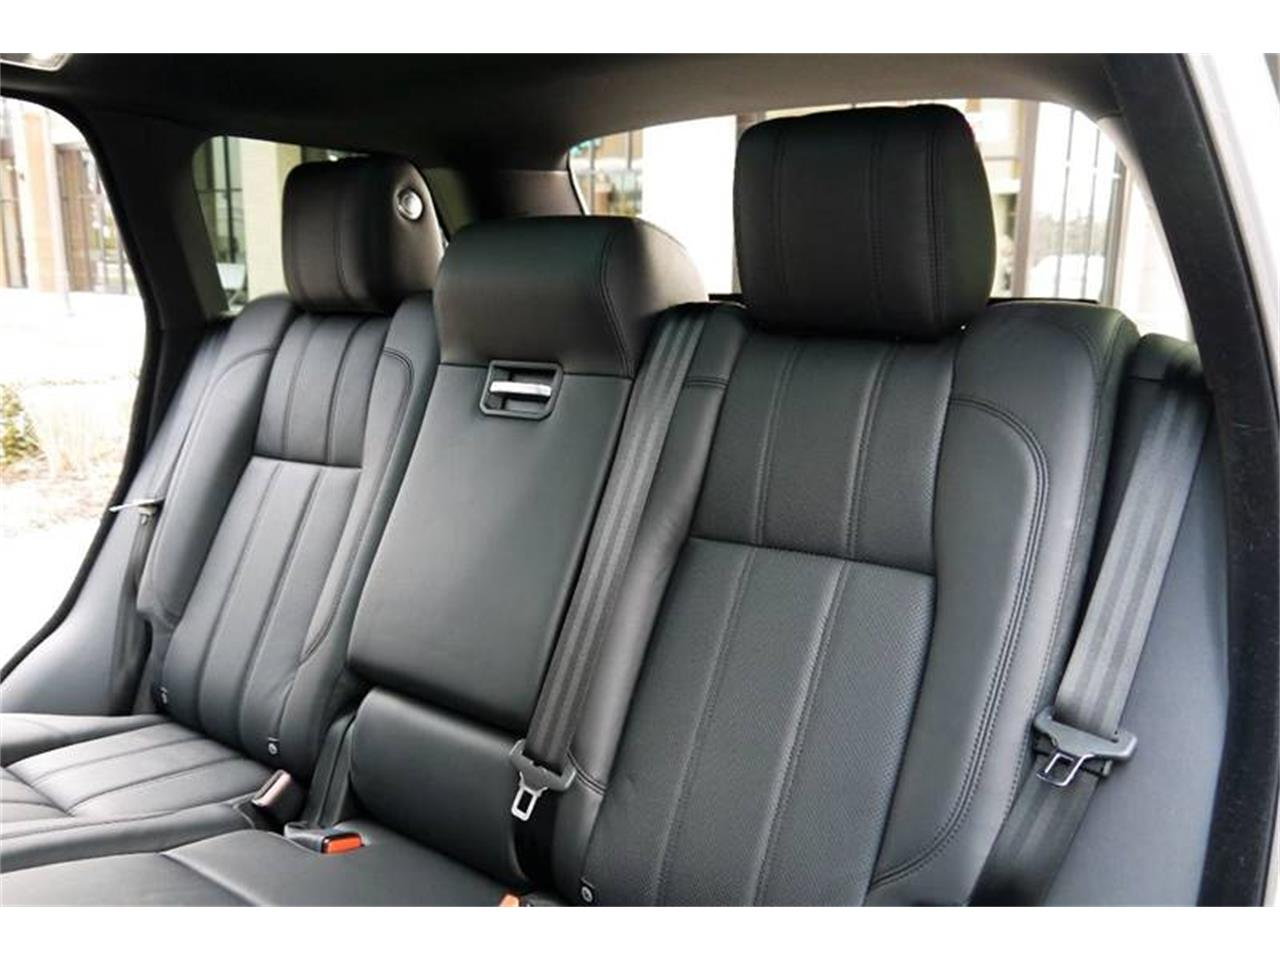 Large Picture of 2017 Land Rover Range Rover located in Brentwood Tennessee Auction Vehicle Offered by Arde Motorcars - MODC